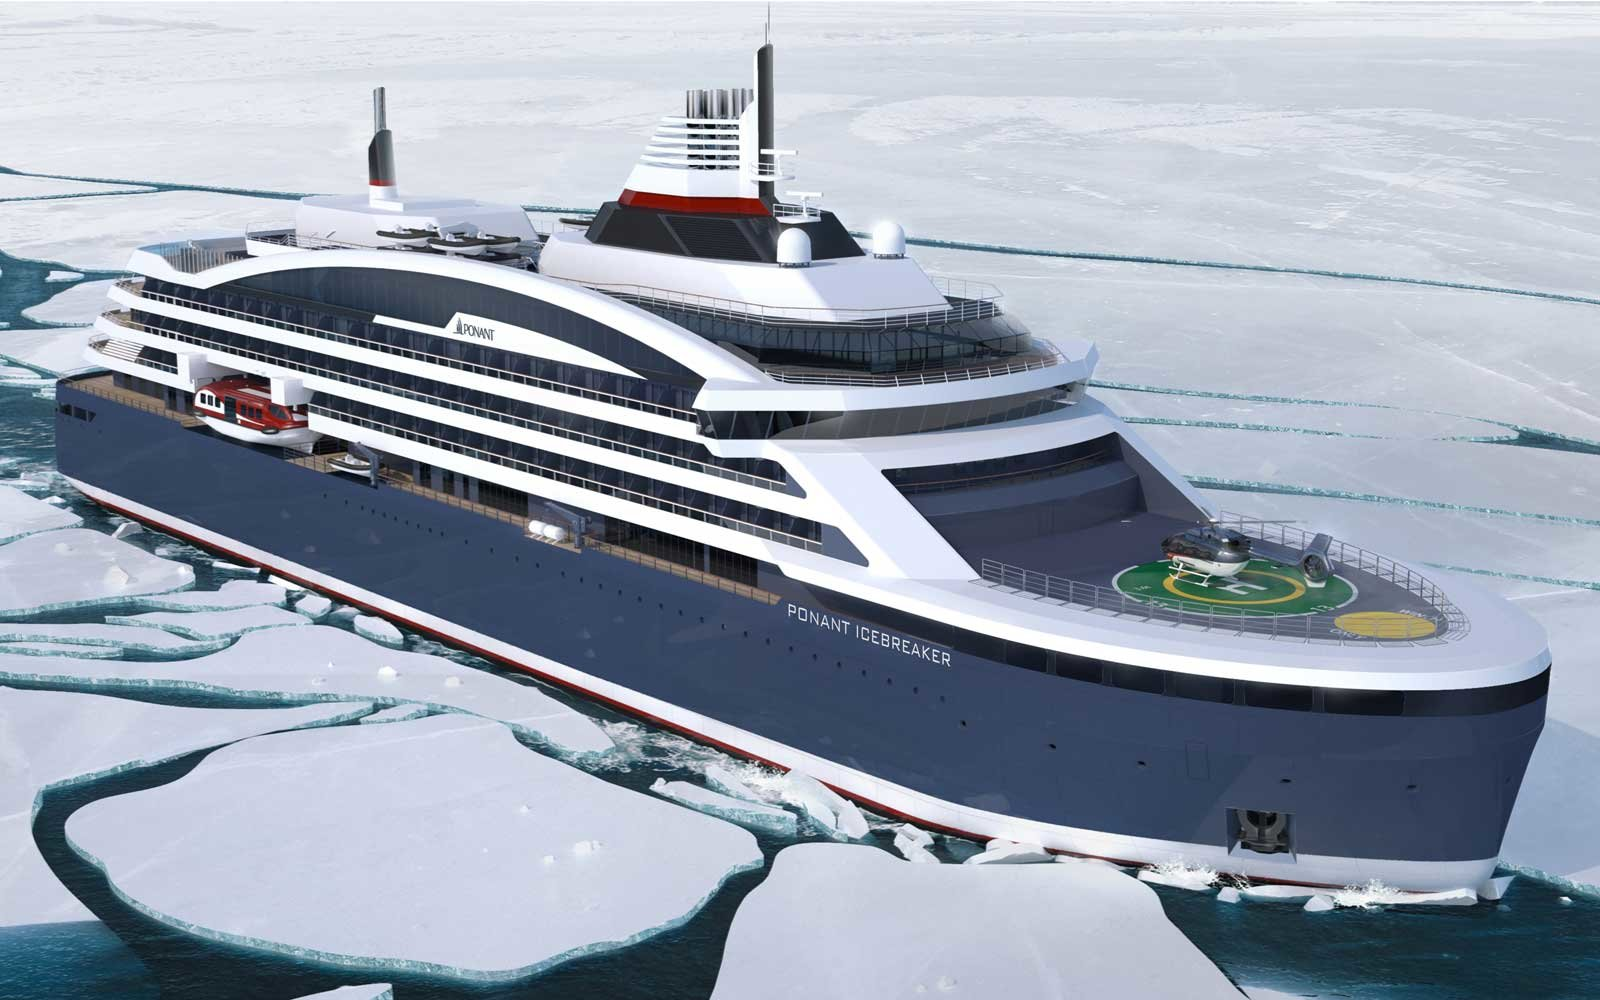 Ponant's New Icebreaker Cruise Ship Can Sail Through 8-foot